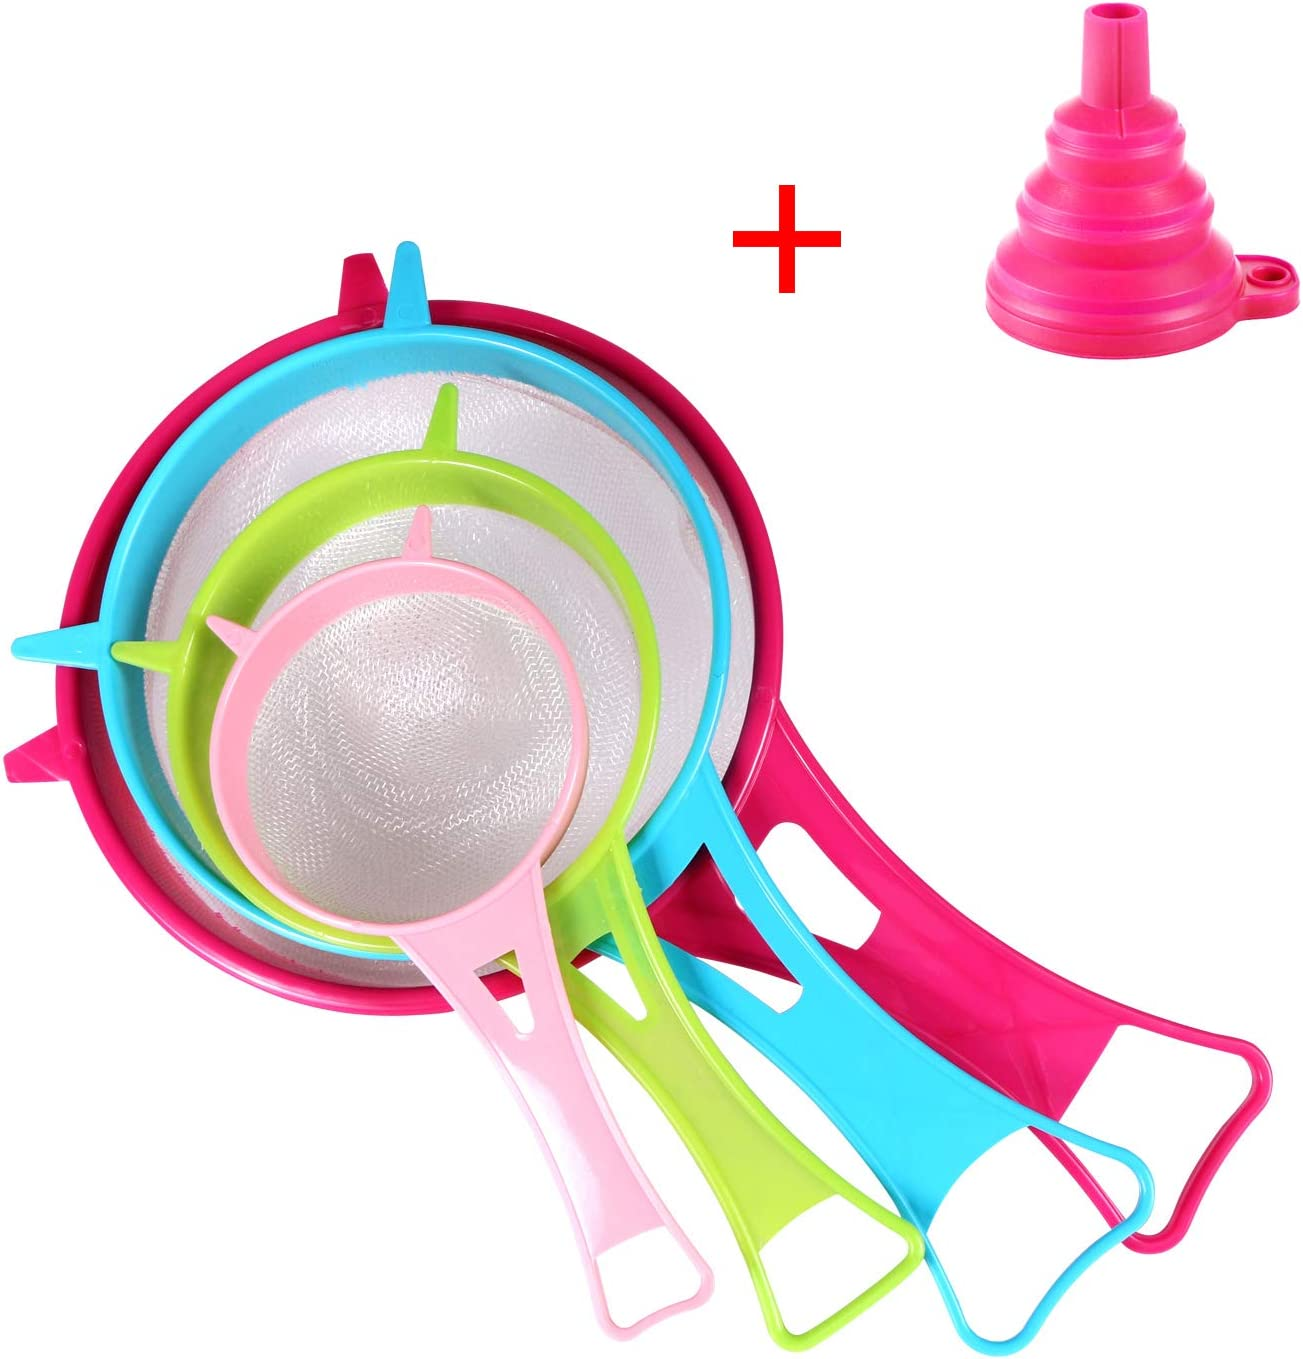 BENBO Fine Mesh Strainer Colander Set, 4Pcs Plastic Food Soy Milk Flour Sieve Long Handle Icing Sugar Sifters Strainer Tea Filter and Silicone Foldable Funnel for Kitchen